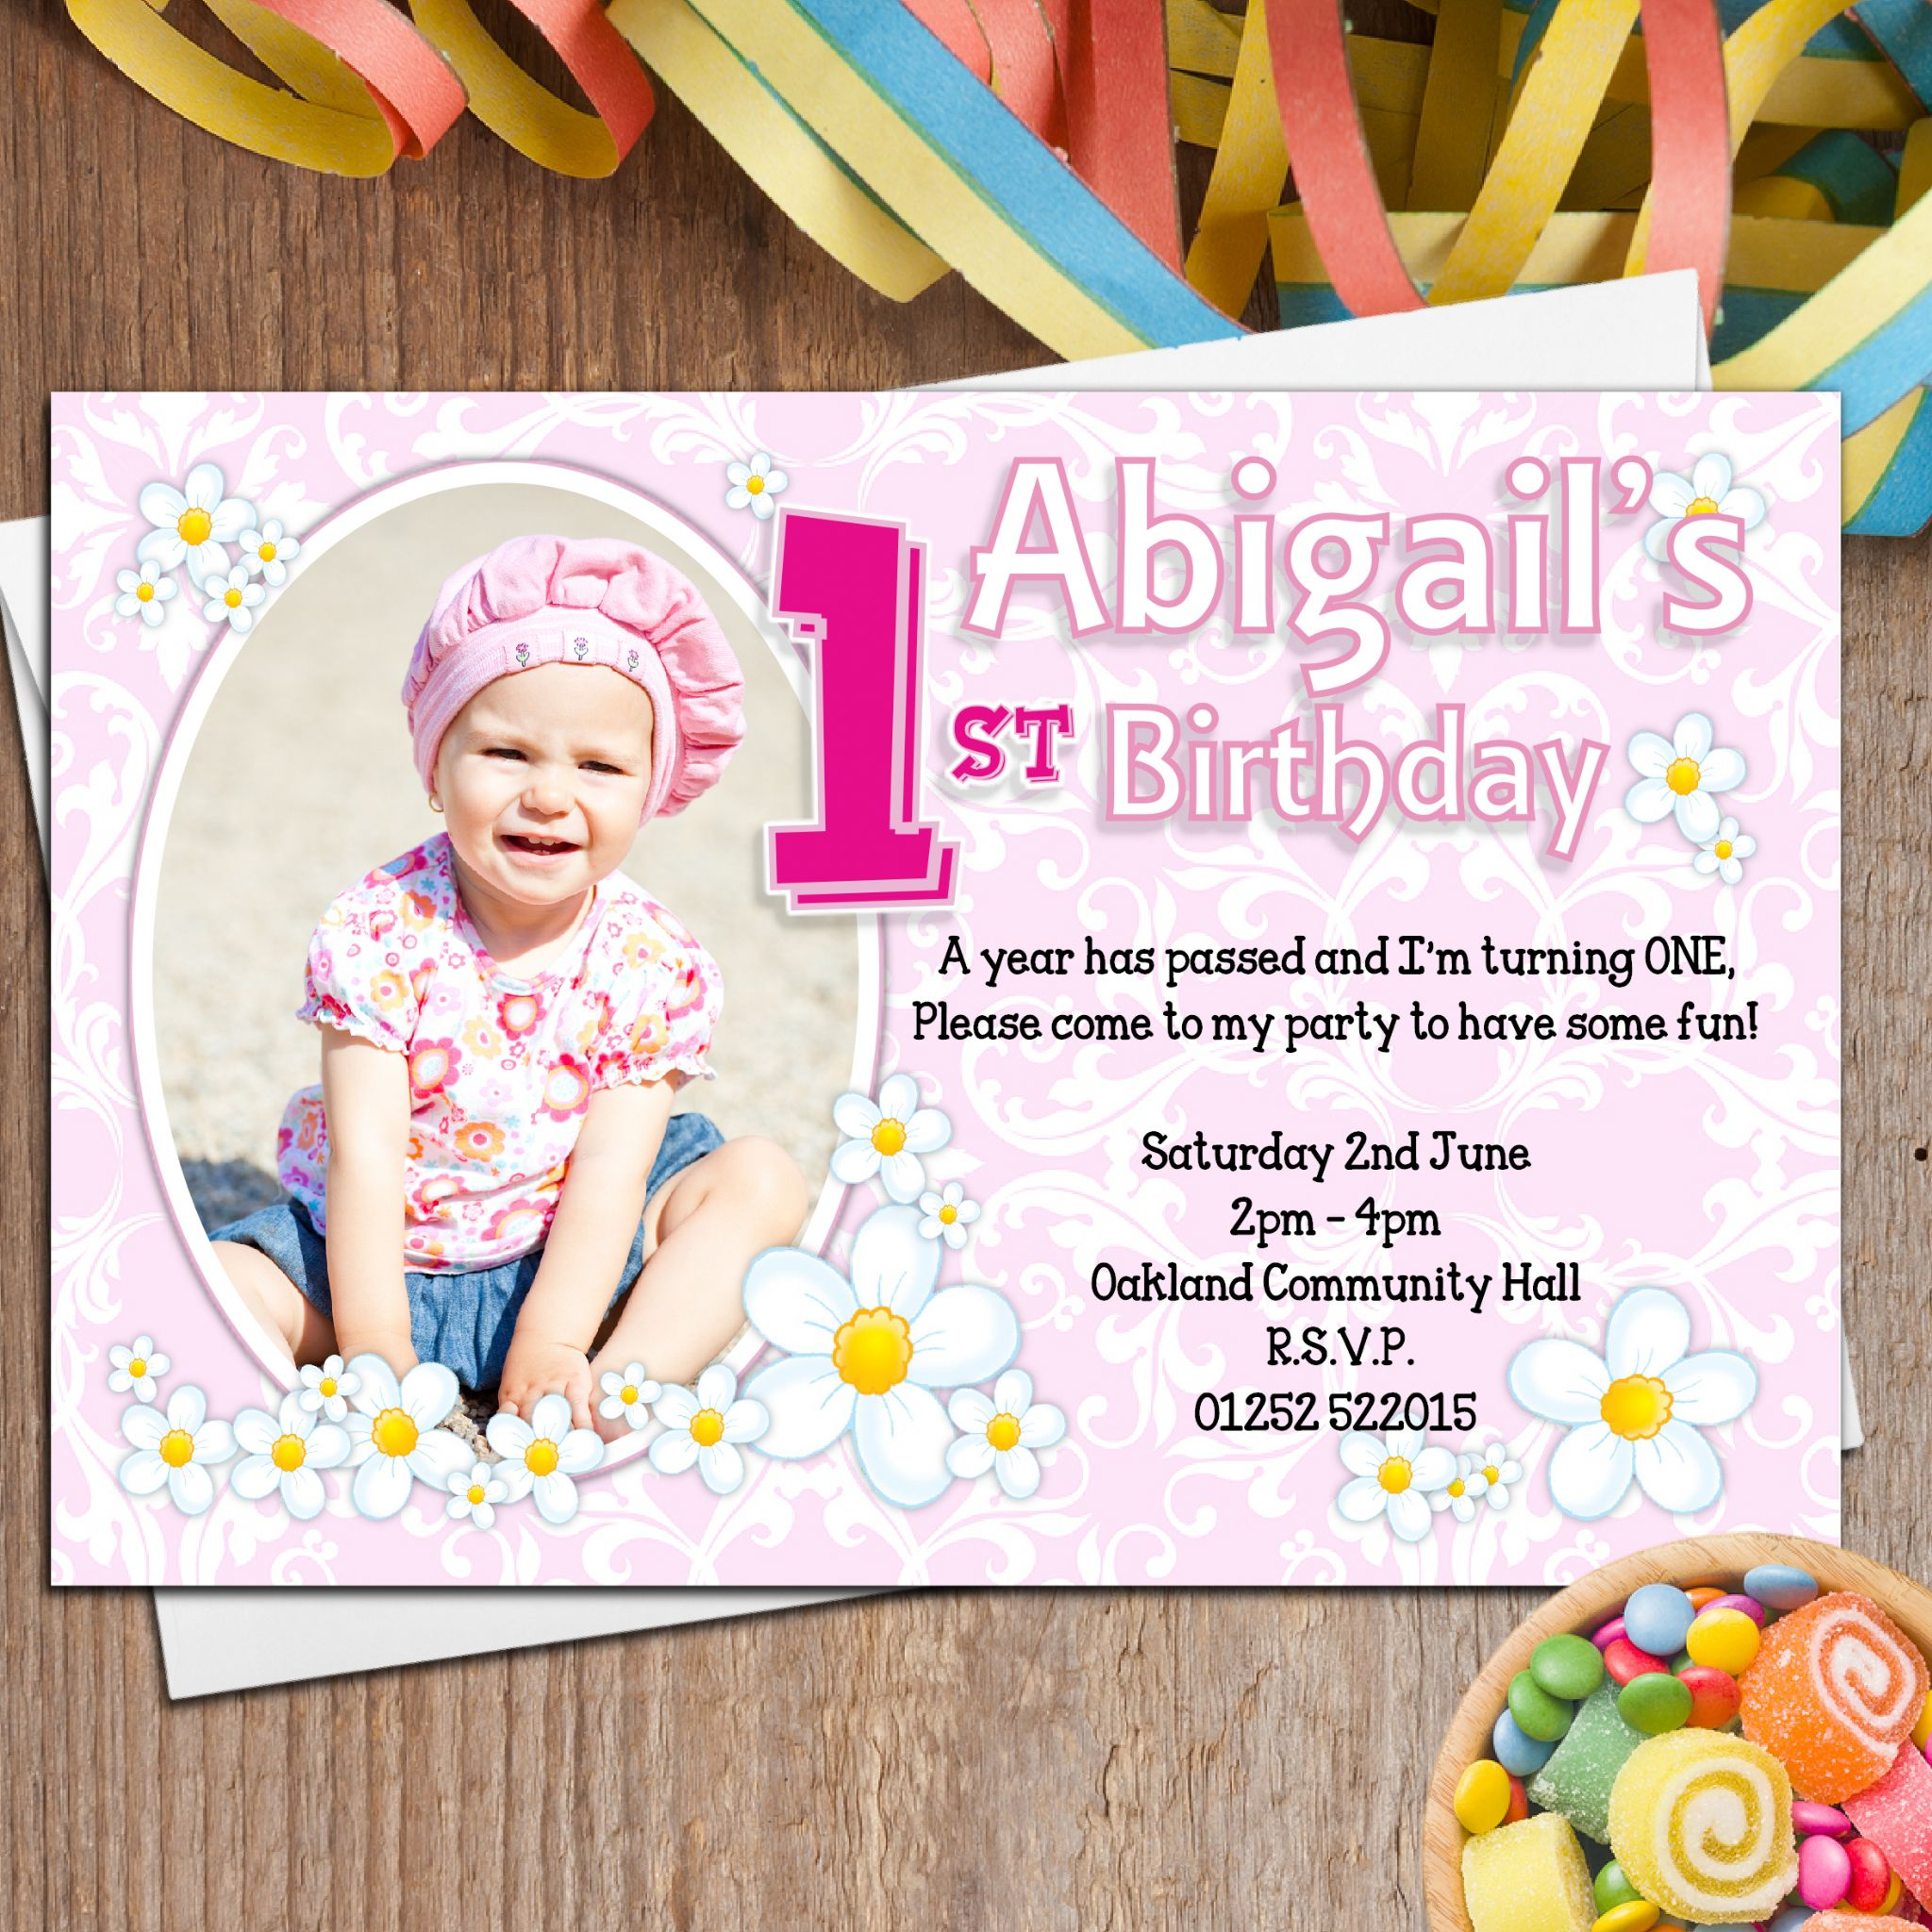 1st birthday invitation wording samples in hindi ; 10-personalised-girls-first-1st-birthday-party-photo-invitations-n27-11350-p